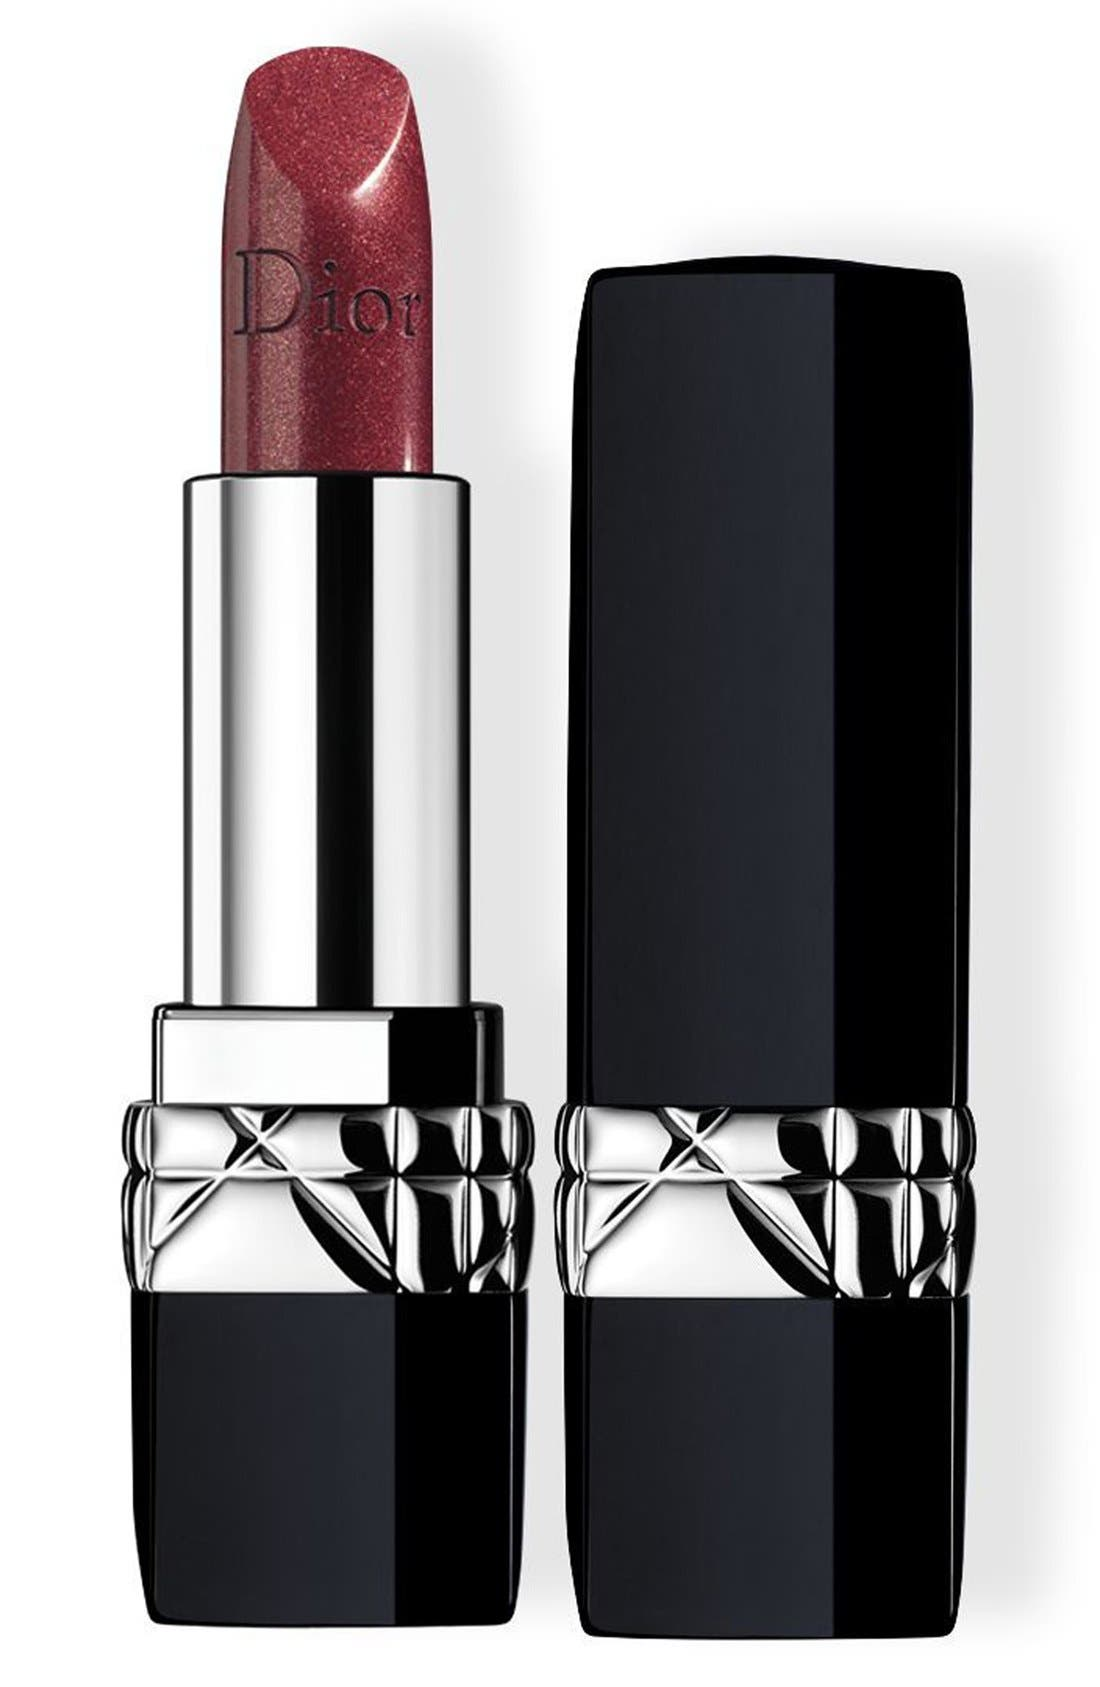 Dior Couture Color Rouge Dior Lipstick - 976 Daisy Plum